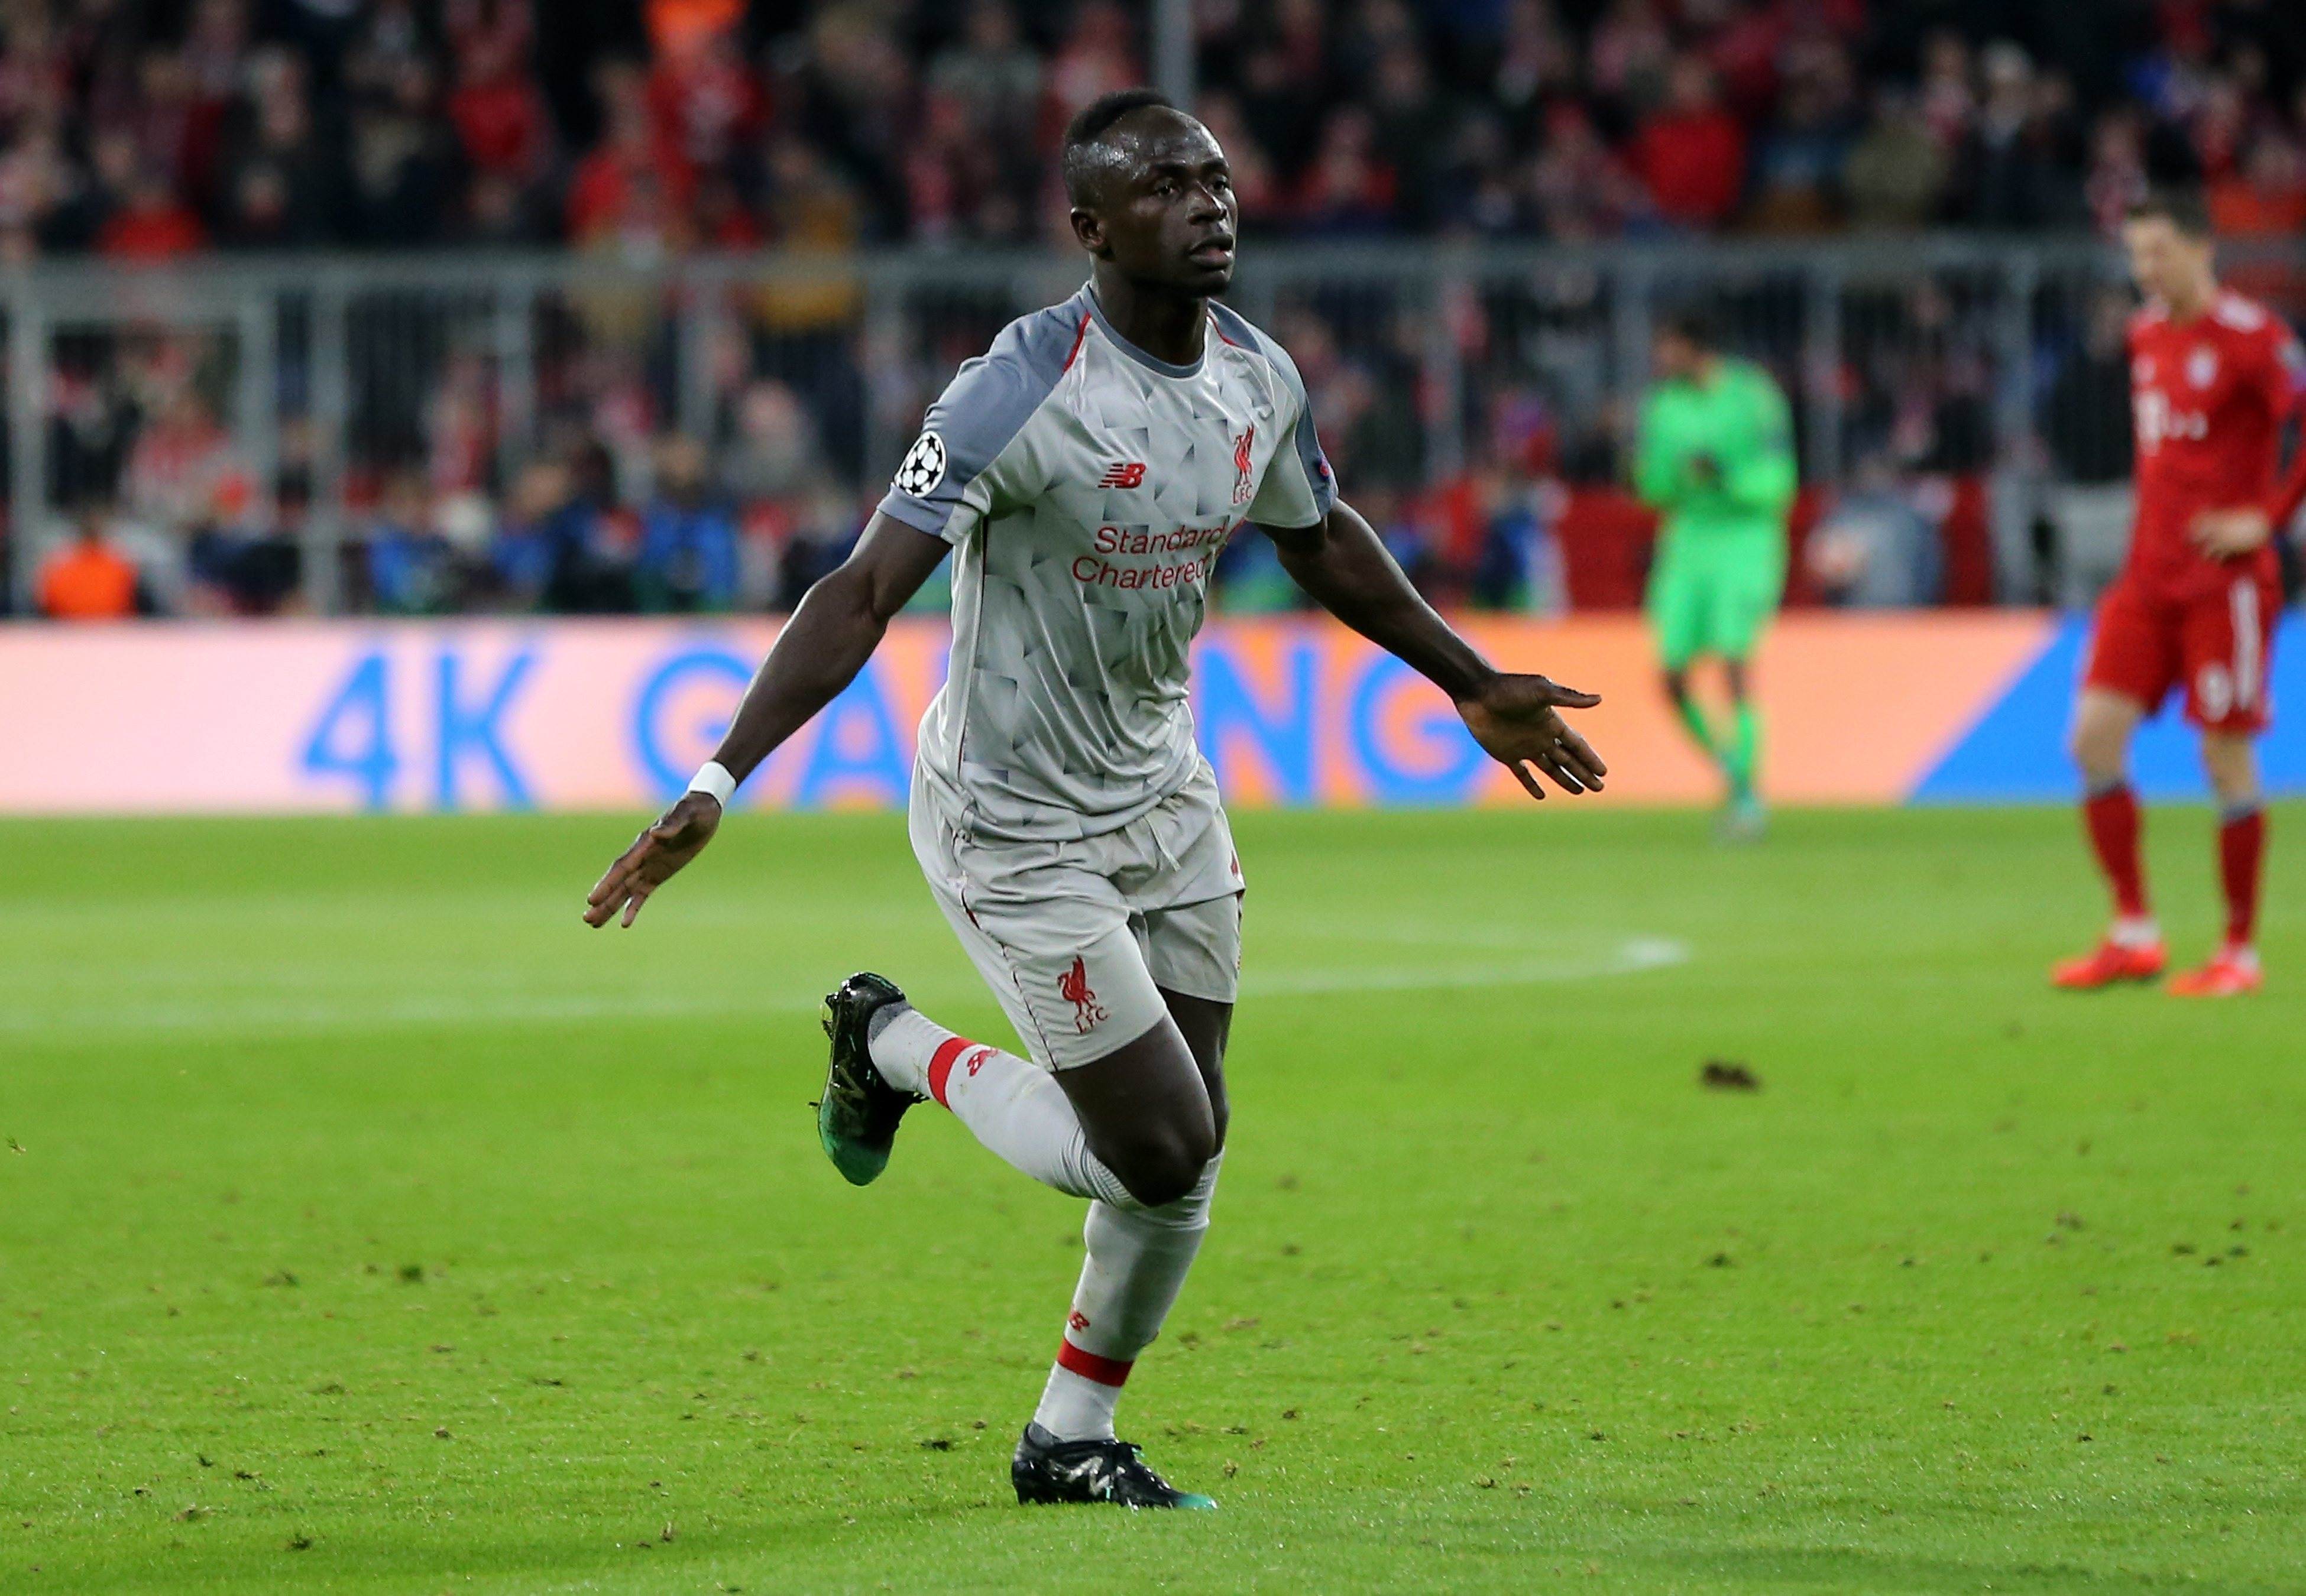 Liverpool's Sadio Mane would swap Champions League to win AFCON